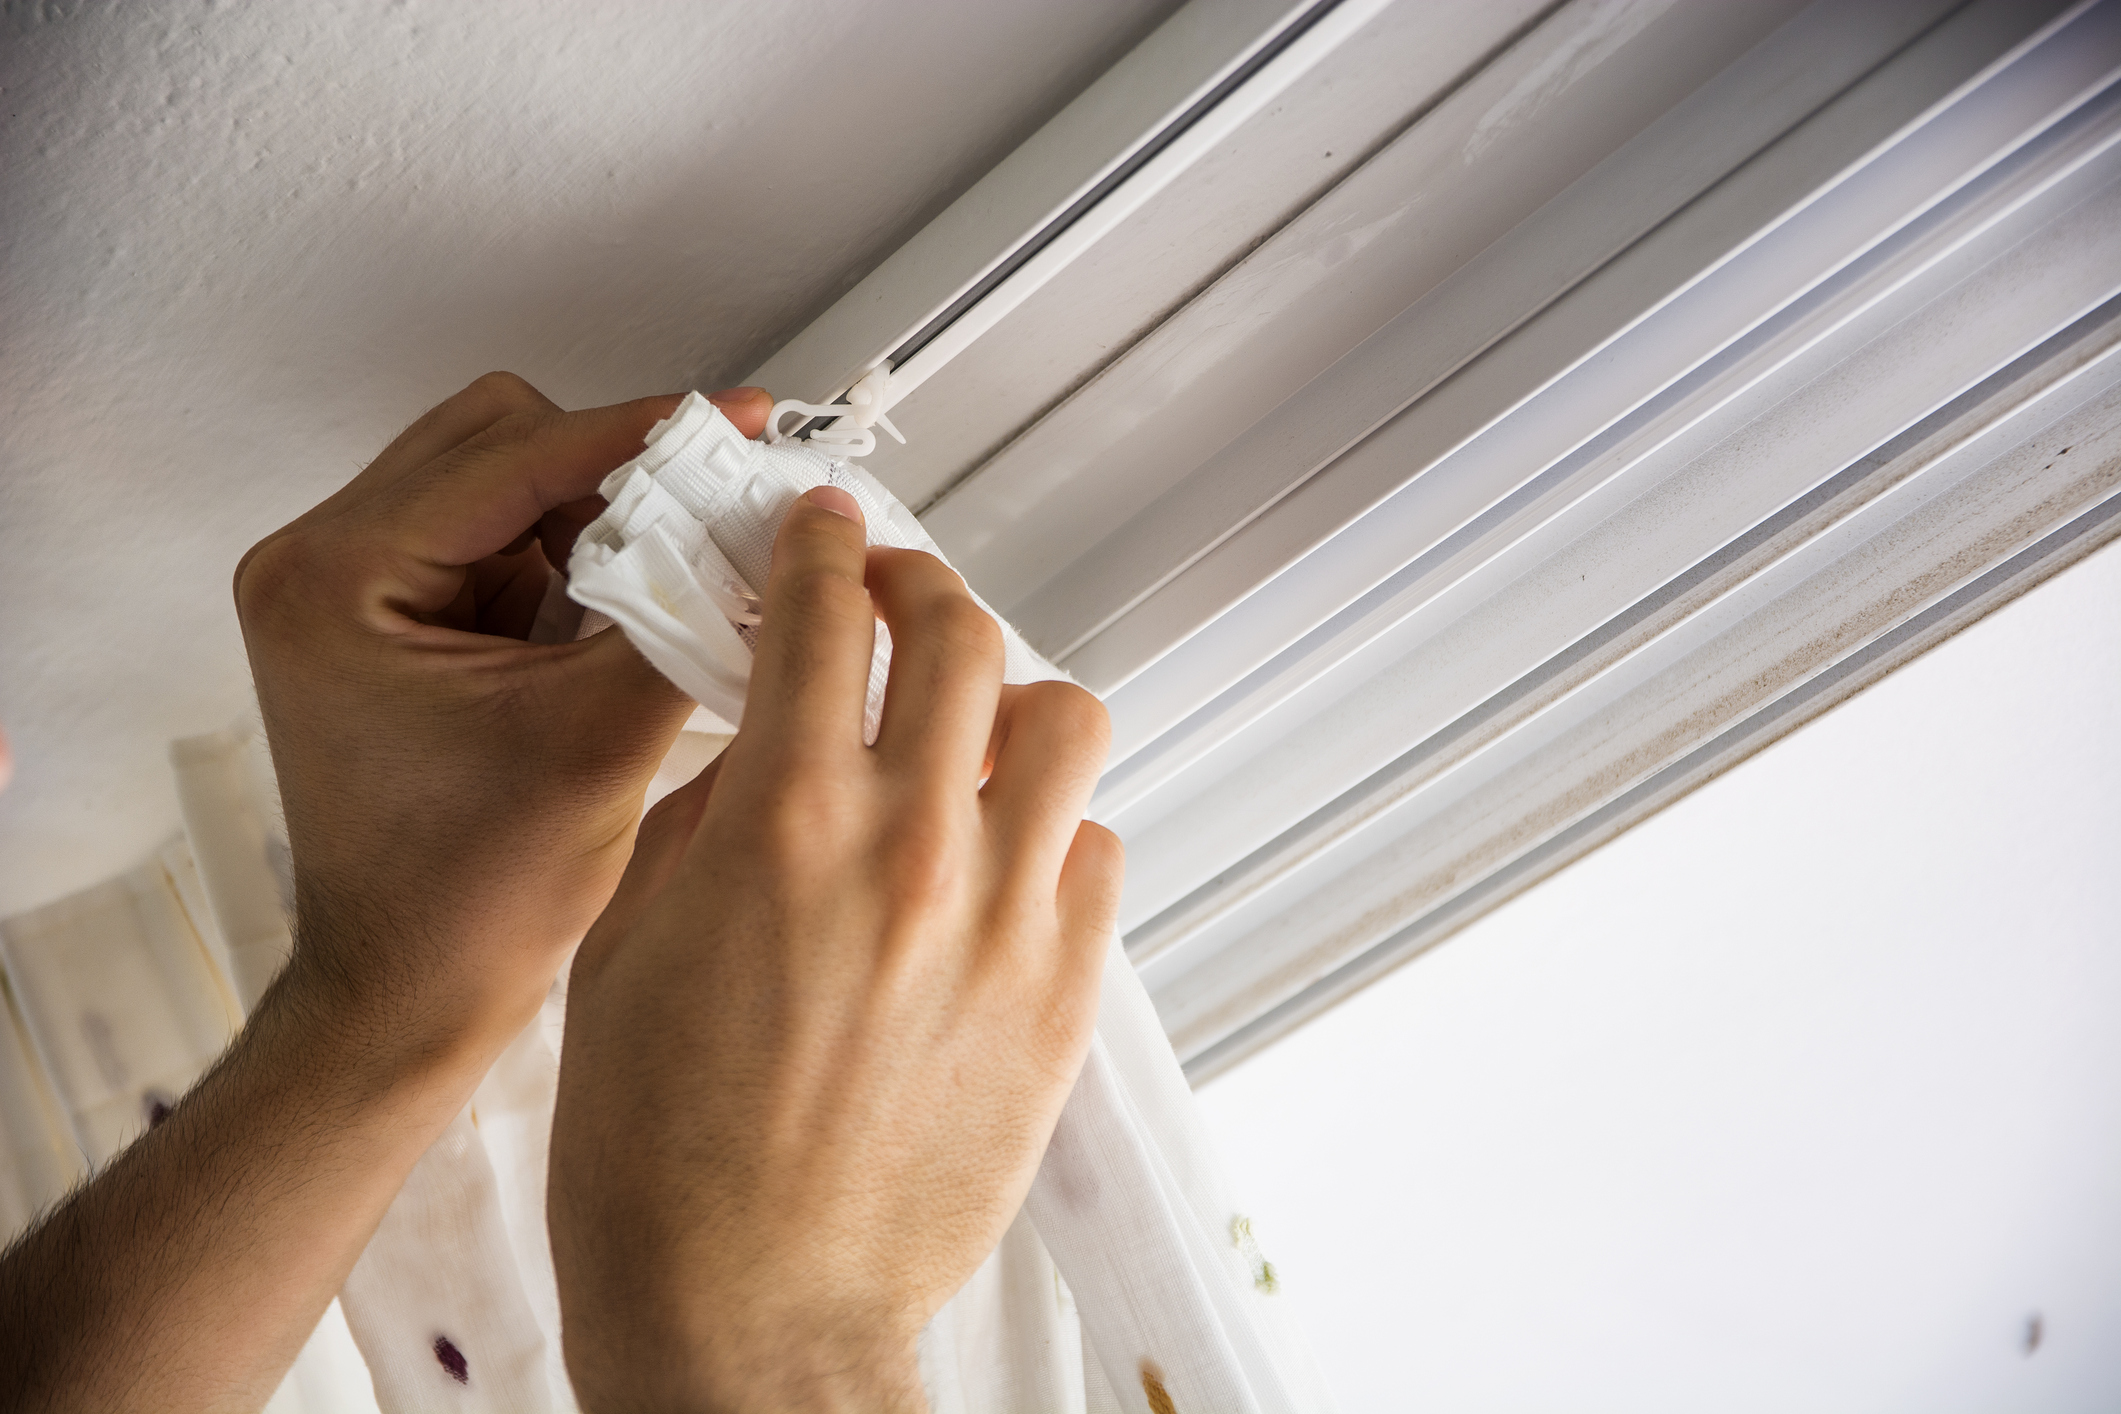 Track - The hooks attach to pulleys inside a trackInstalled into the wall or ceilingCurtains will glide nicely